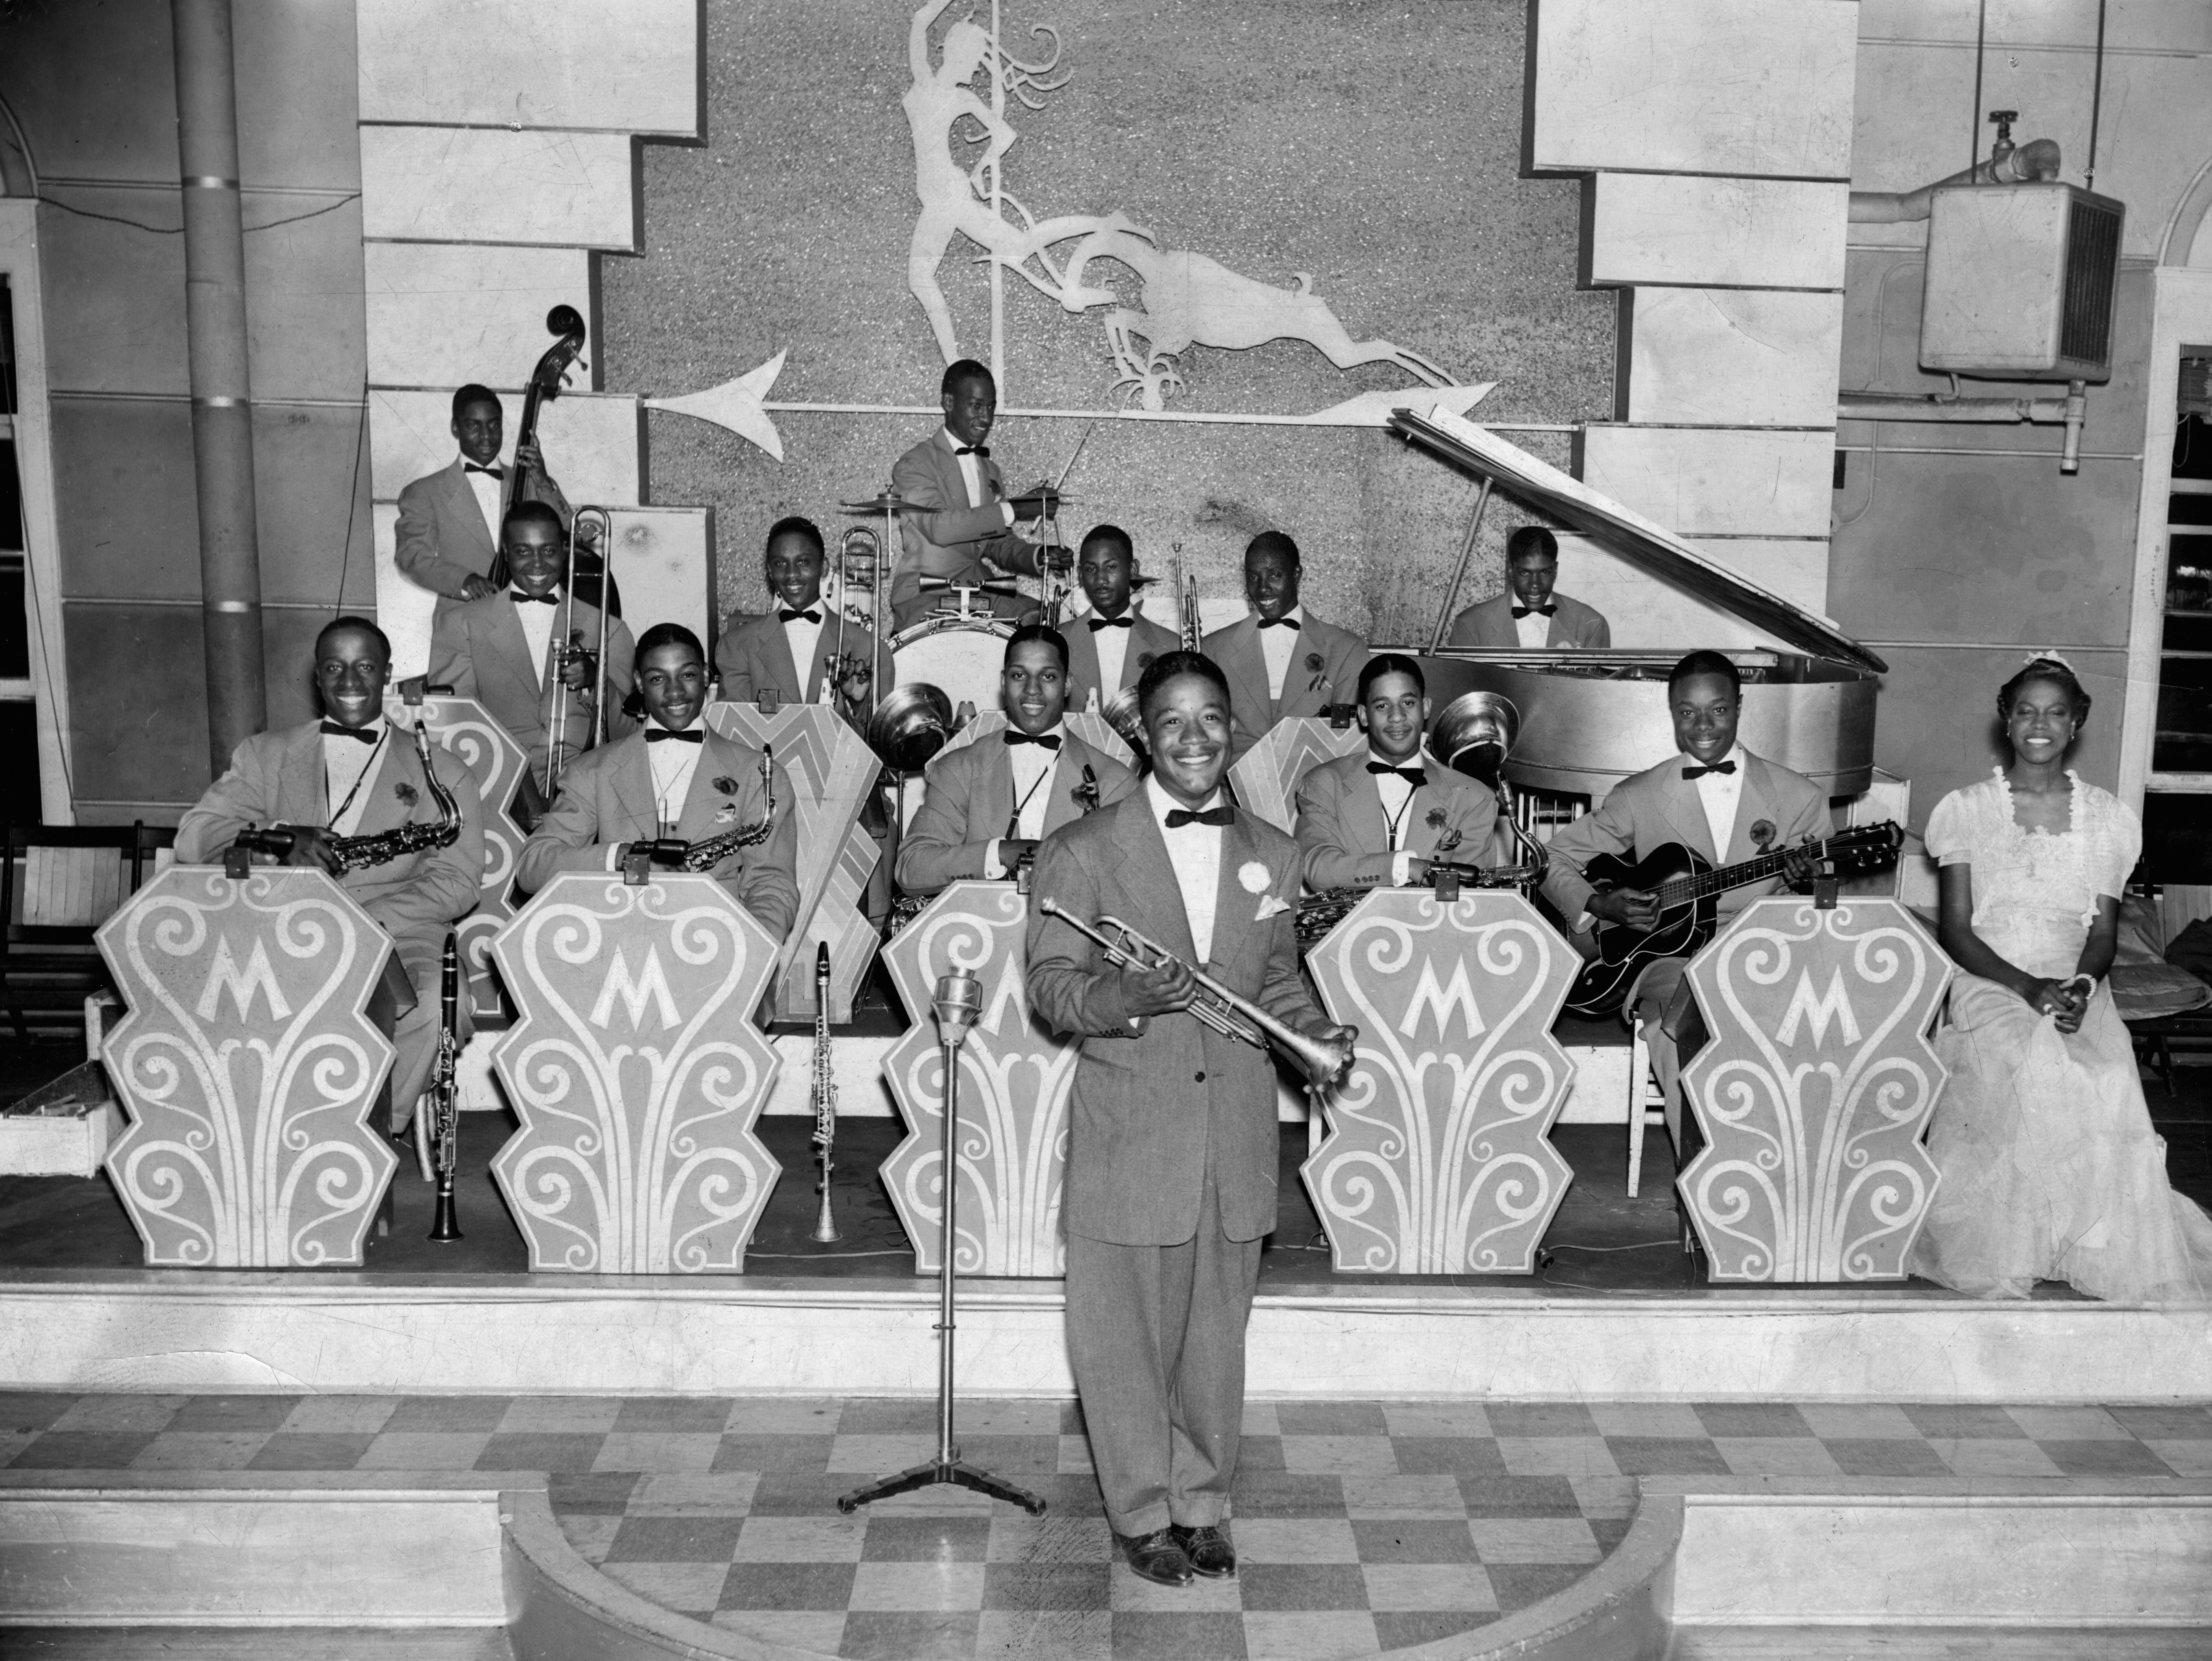 Mathew Rucker and his Spirits of Swing band, Mayfair Ballroom, circa 1938. Band members include: Walter Bragg, bass; Lawrence Hicks, drums; Willis Shorter, piano; Leroy Willis and Robert Lewis, trombones; Andrew Harkless and Edgar Williams, trumpets; Yusef Lateef, tenor sax; Frank Porter and Johnnie Taylor, alto sax; Alphonso Ford, tenor sax; George Gleaton, guitar; Priscilla Royster, vocals; Mathew Rucker, trumpet and leader.